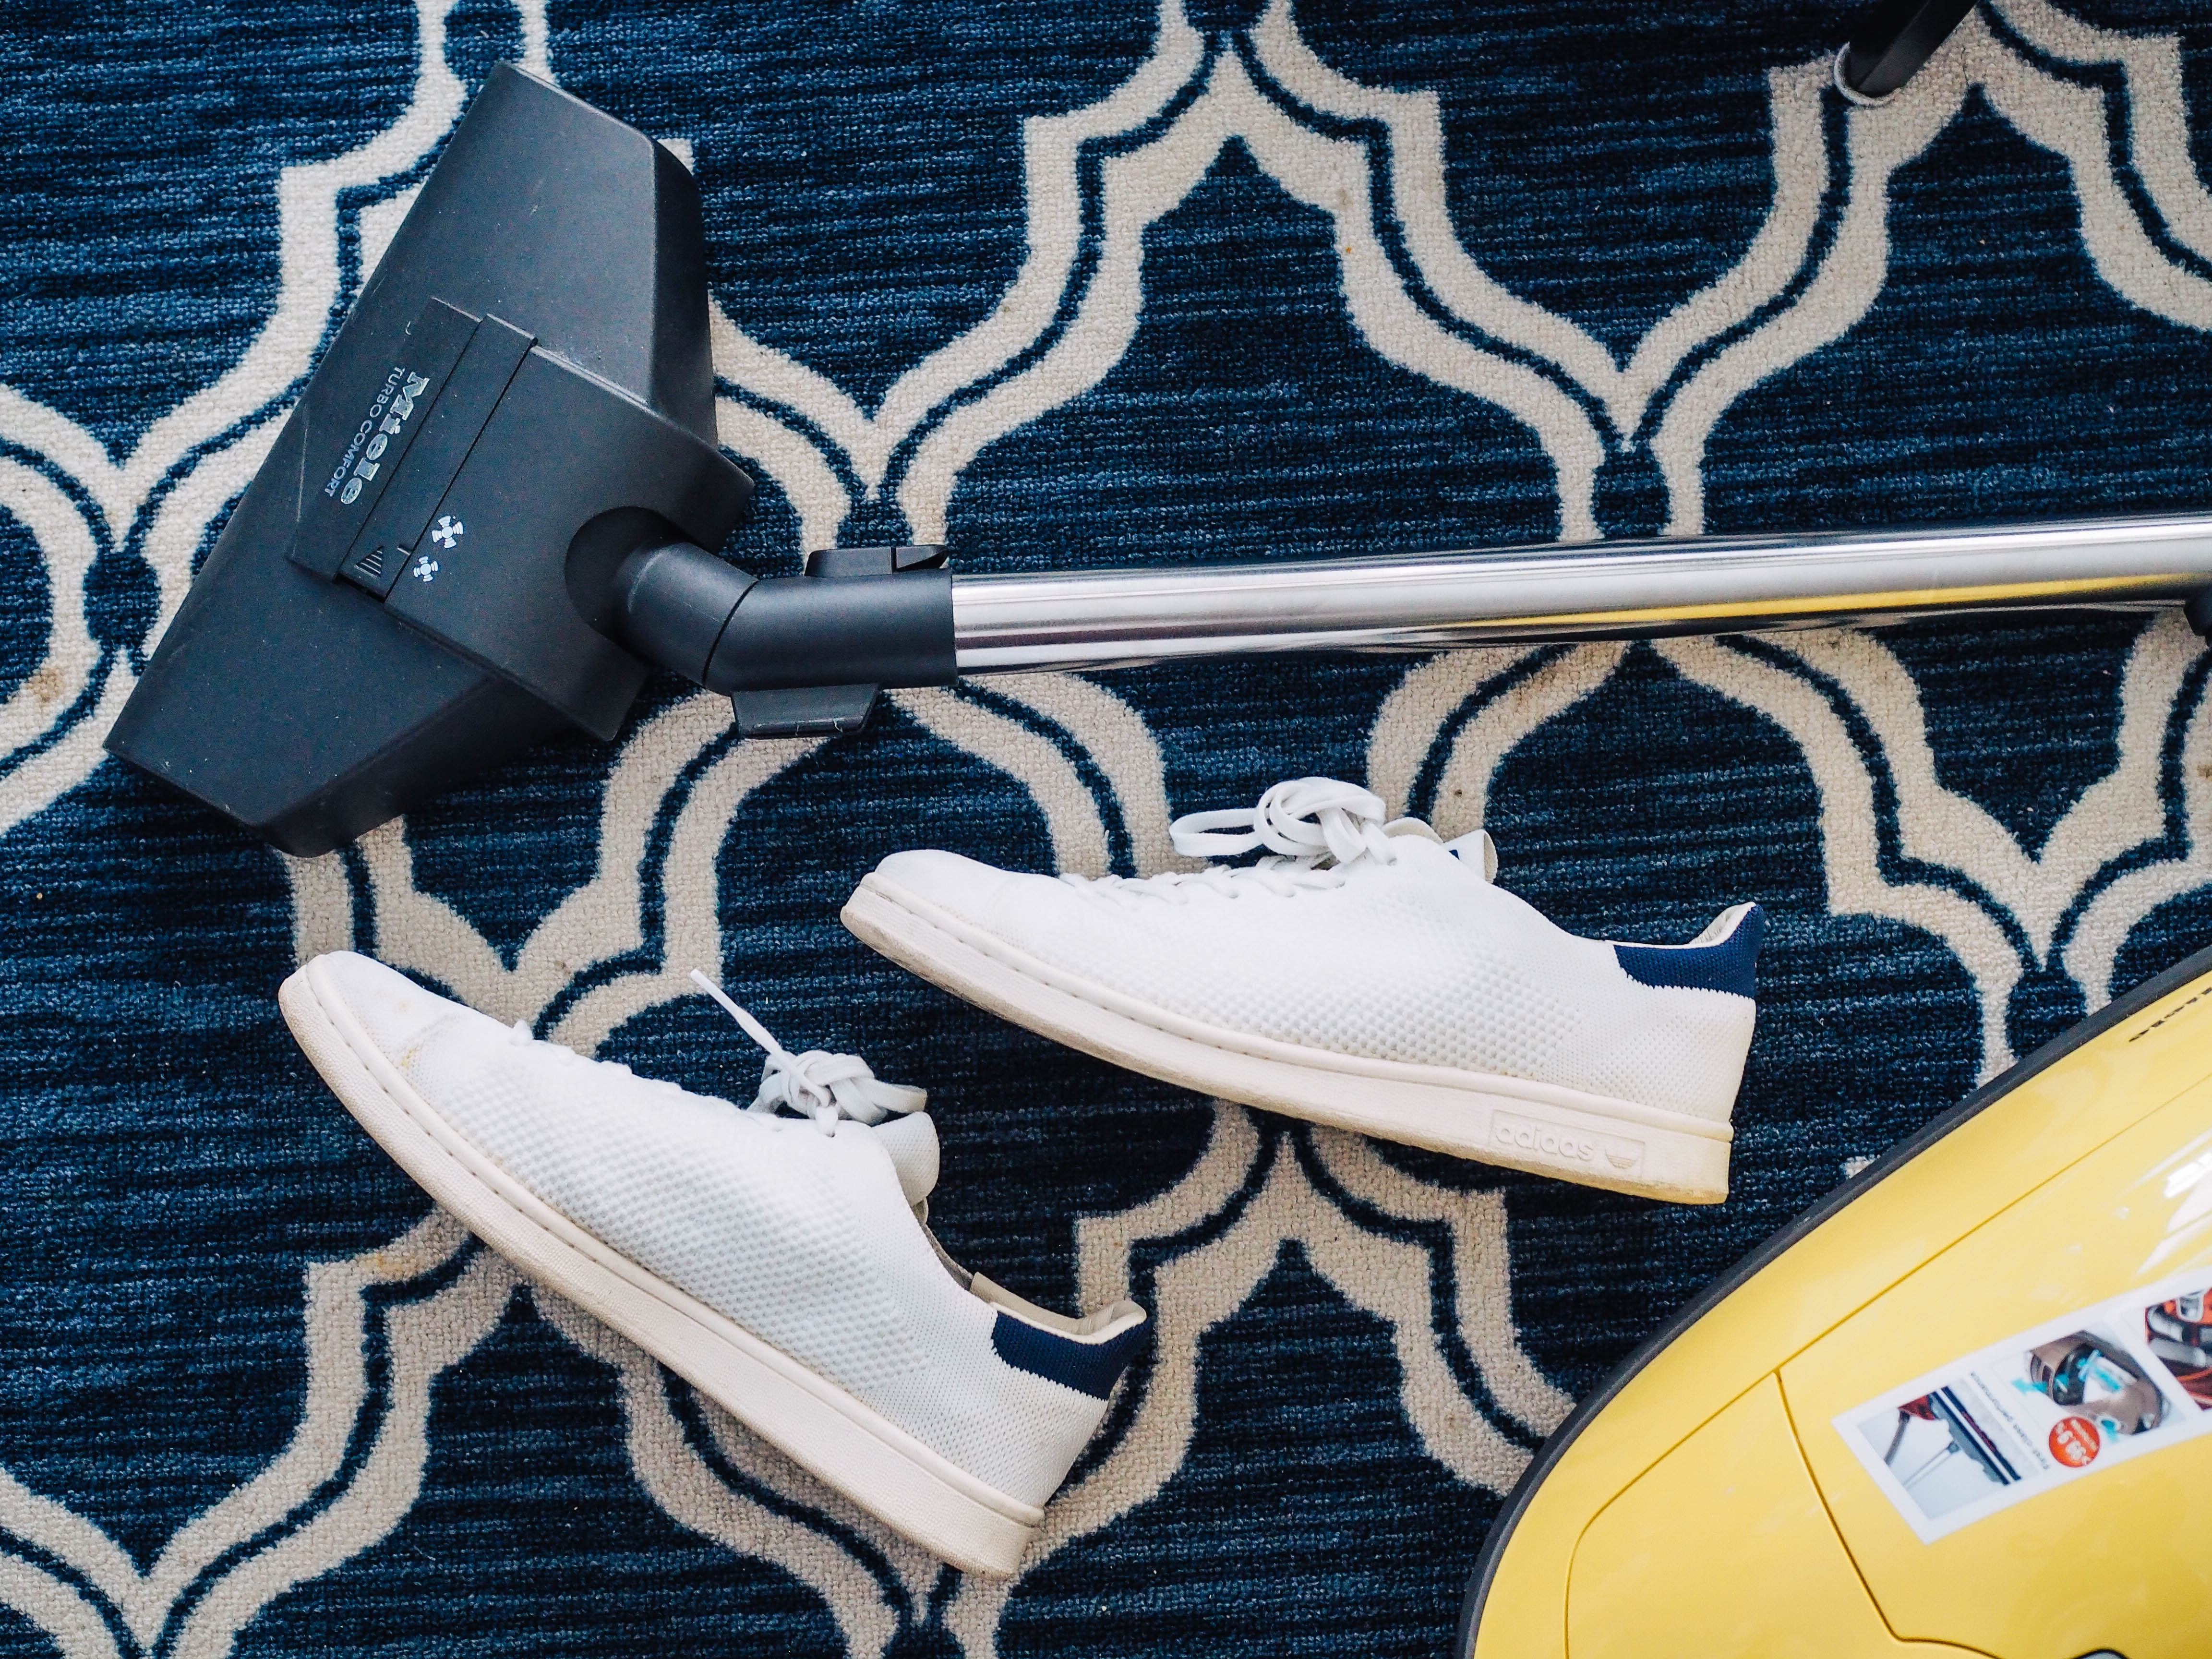 picture of a navy blue carpet vacuum cleaner and white trainers